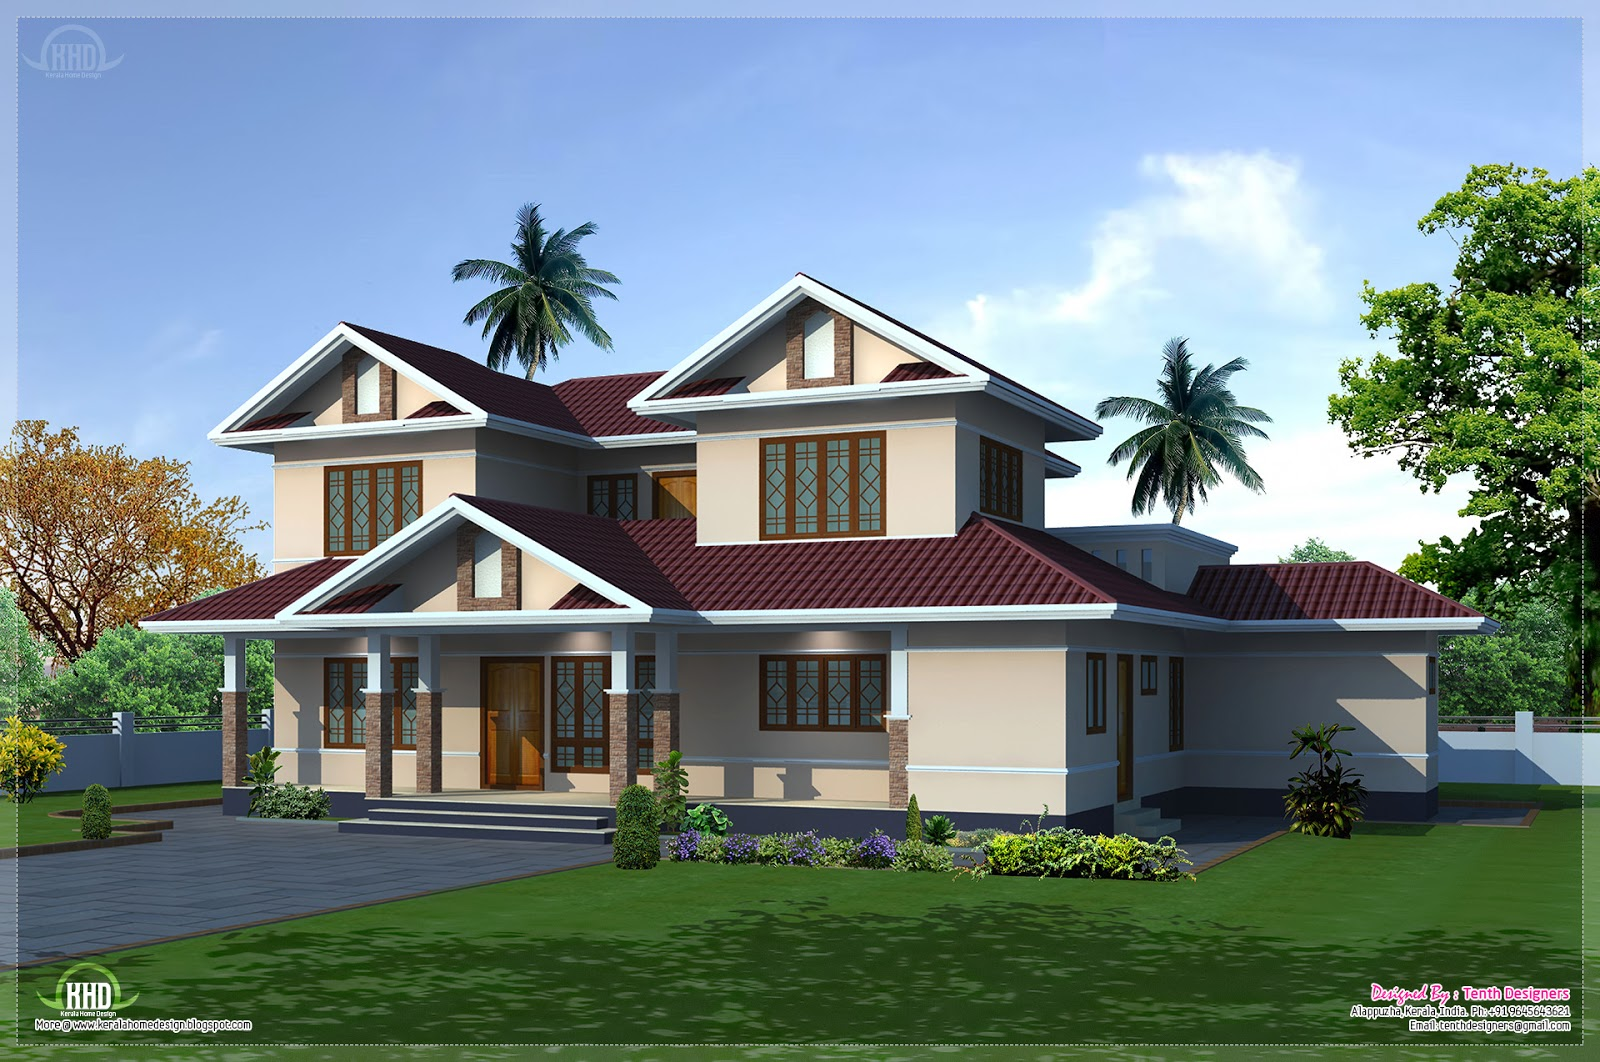 Exterior traditional house plans exterior house designs for Classic house design